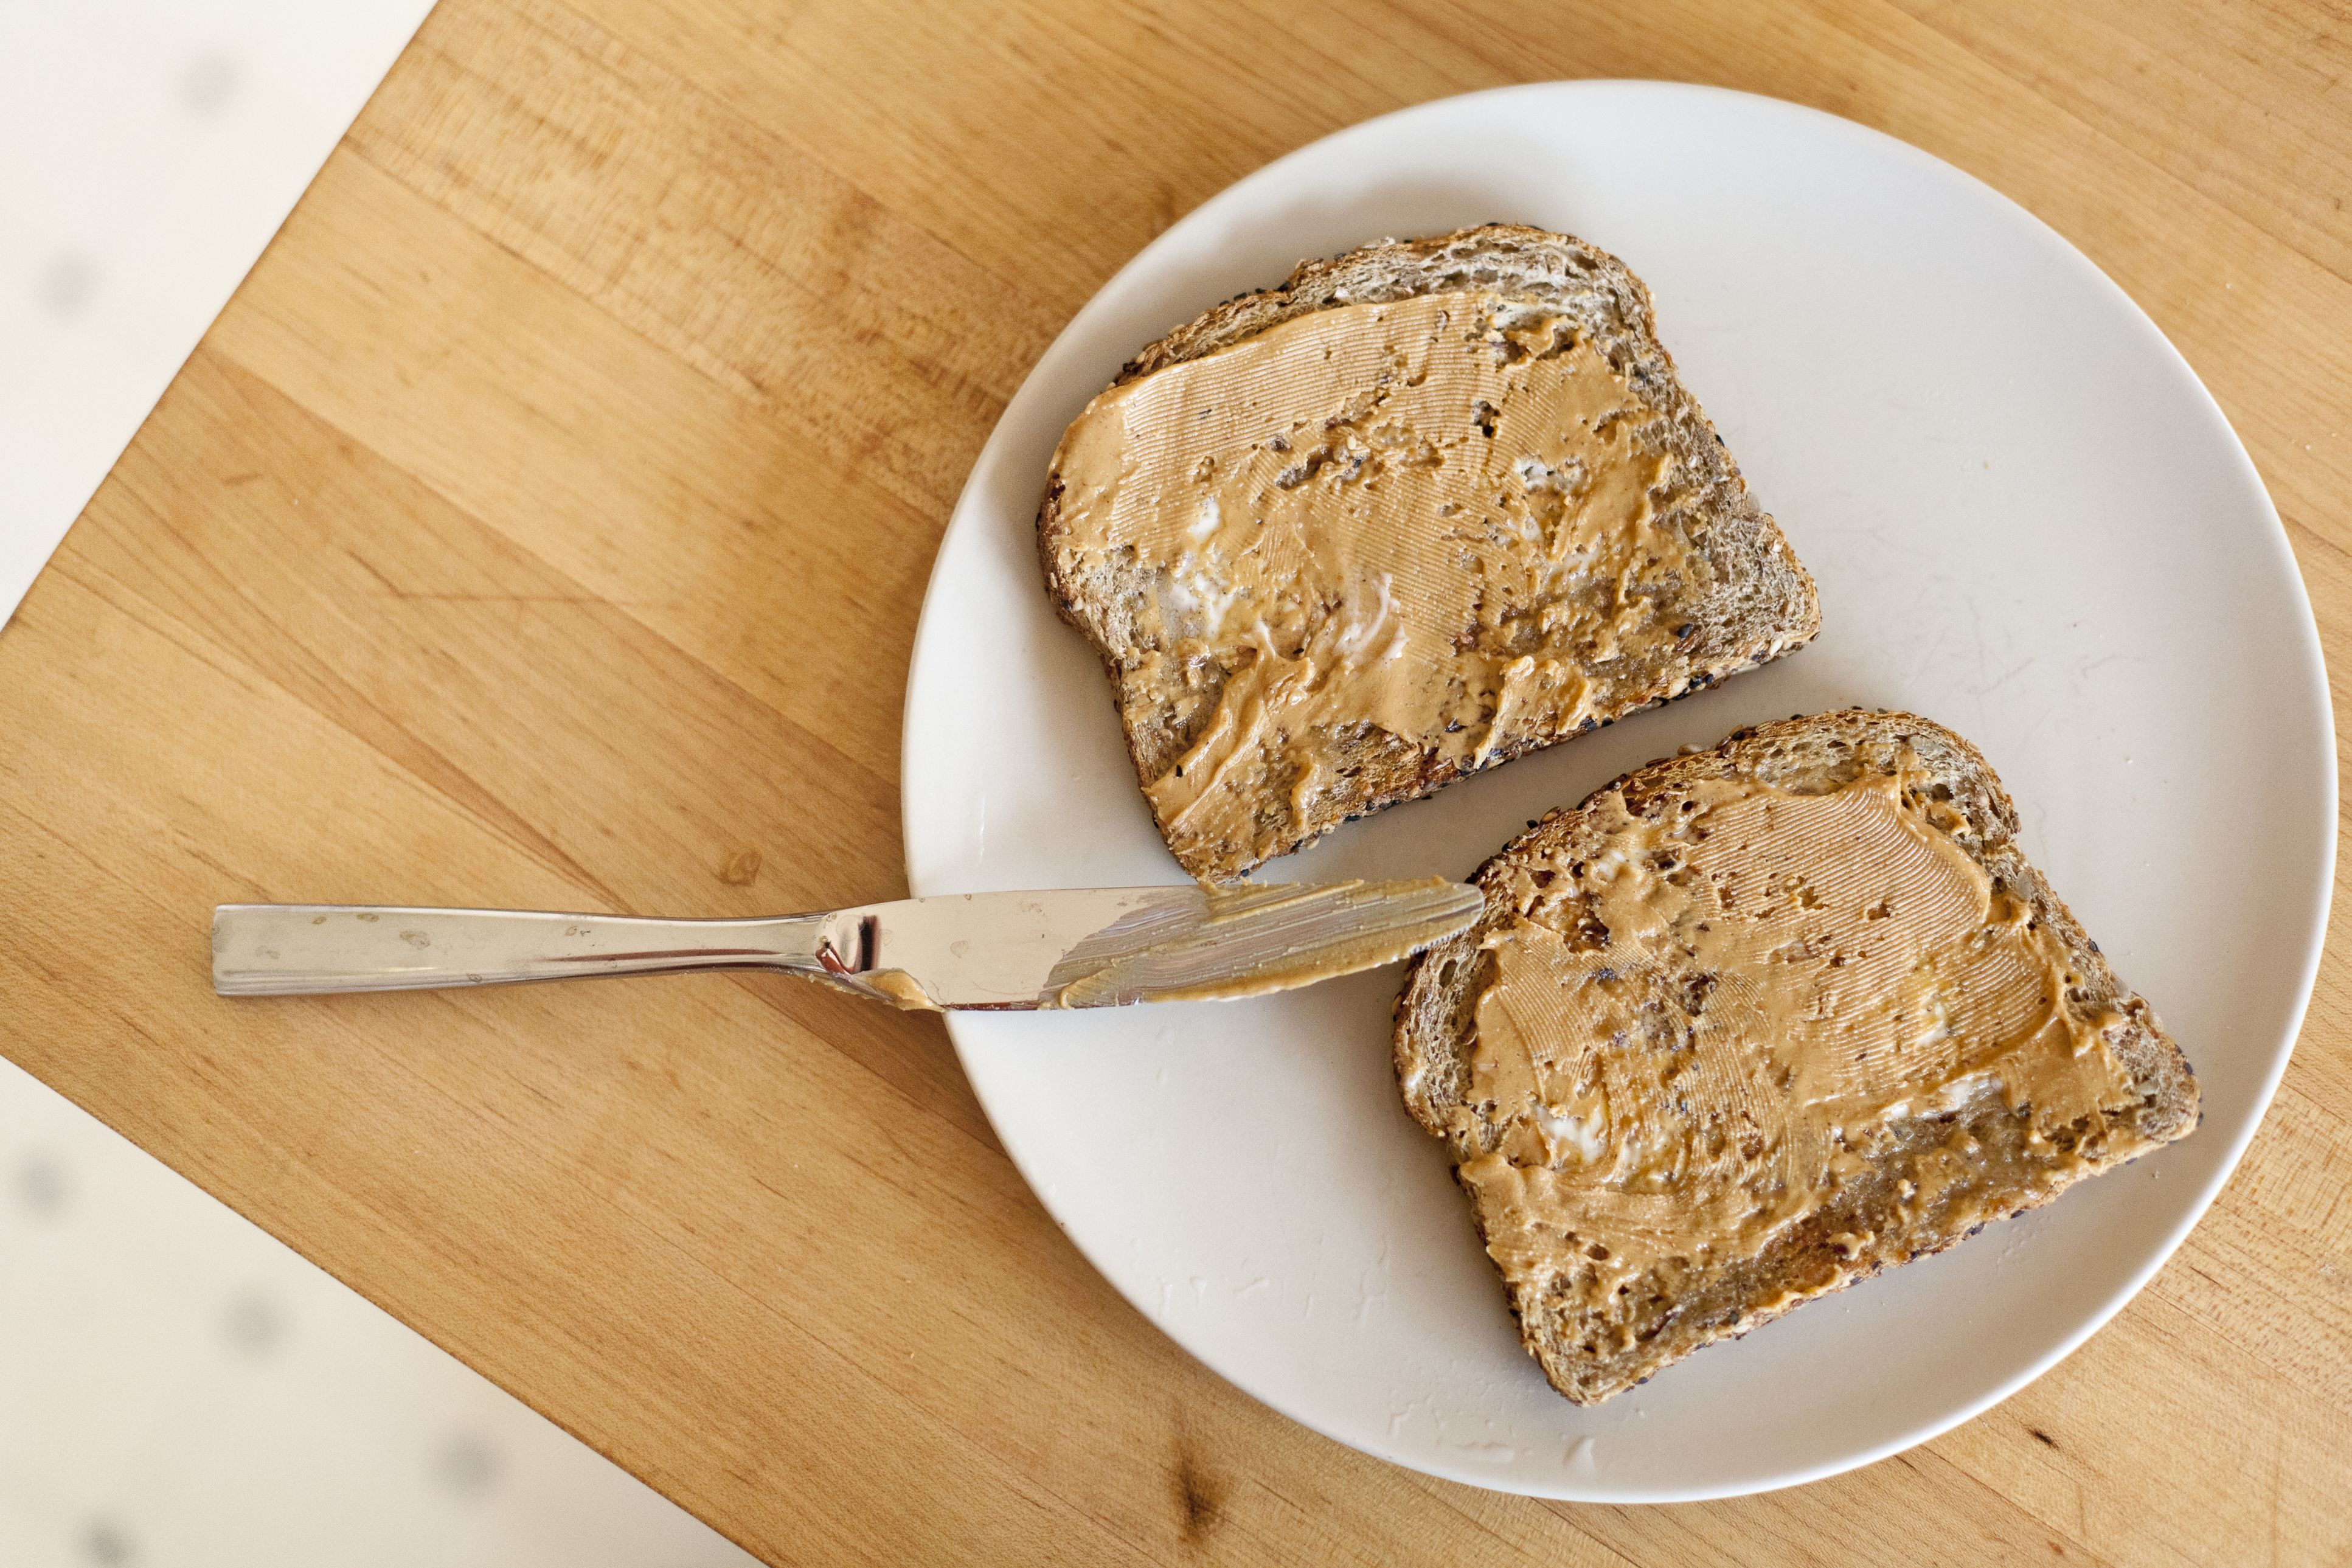 Have an Extra Slice of Whole Grain Toast With Peanut Butter at Breakfast